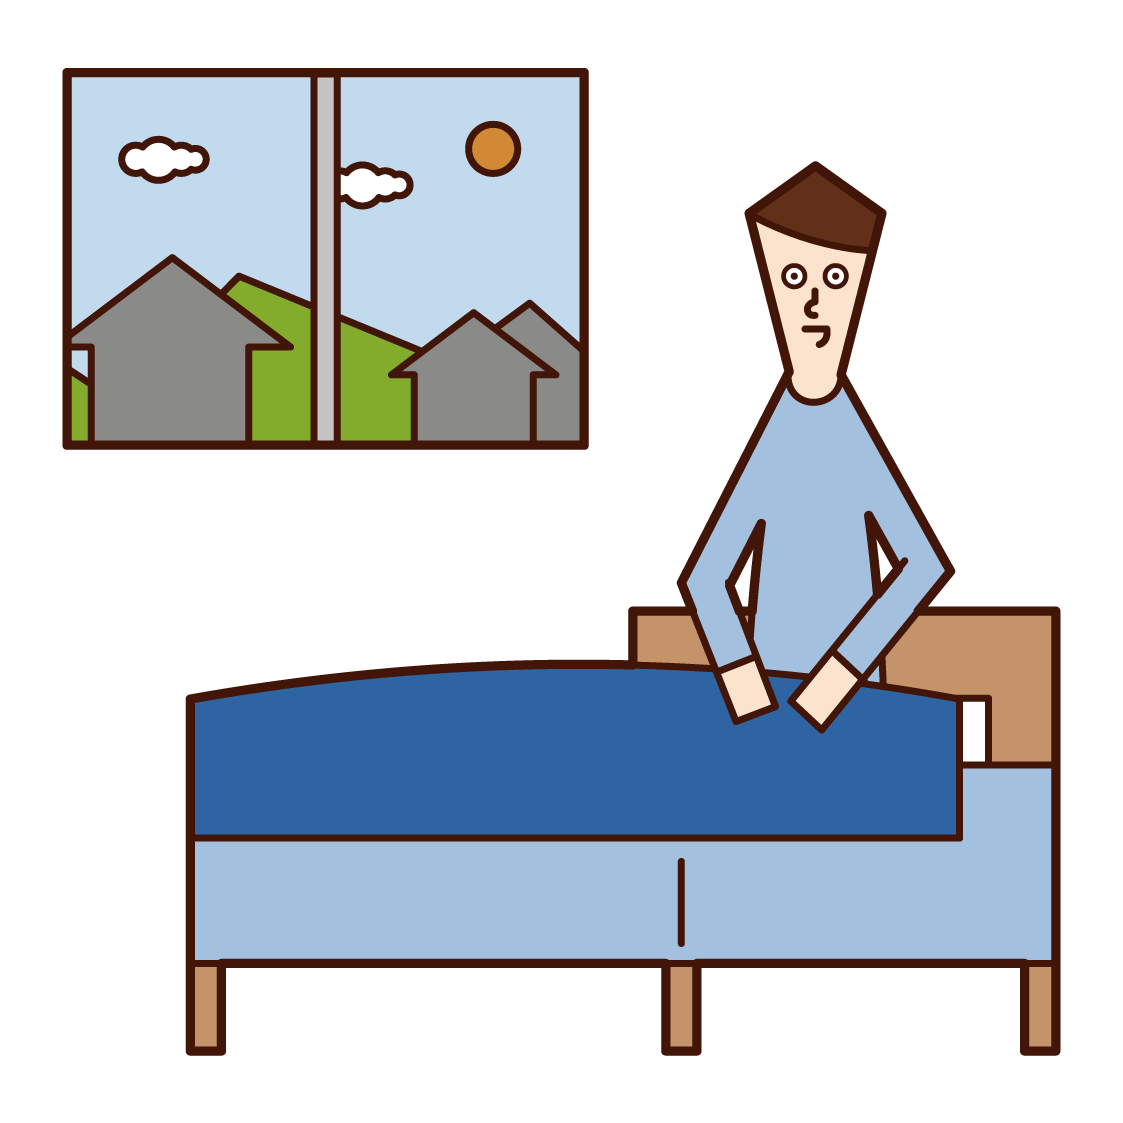 Illustration of a man getting up